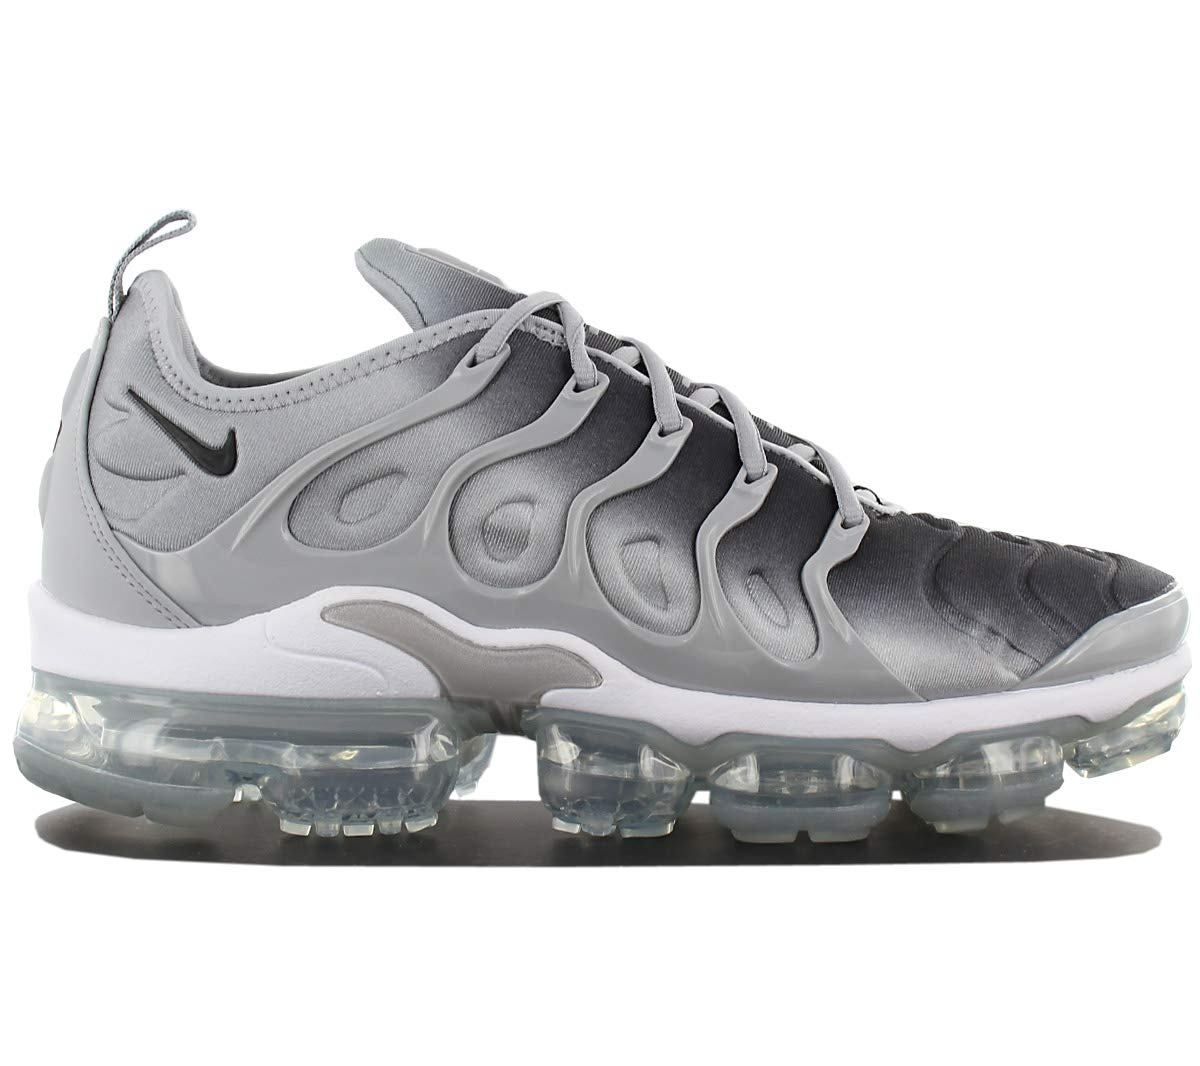 check out cb9d7 bb7d8 Nike Air Vapormax Plus Mens Style: 924453-007 Size: 9 Wolf Grey/Black-White